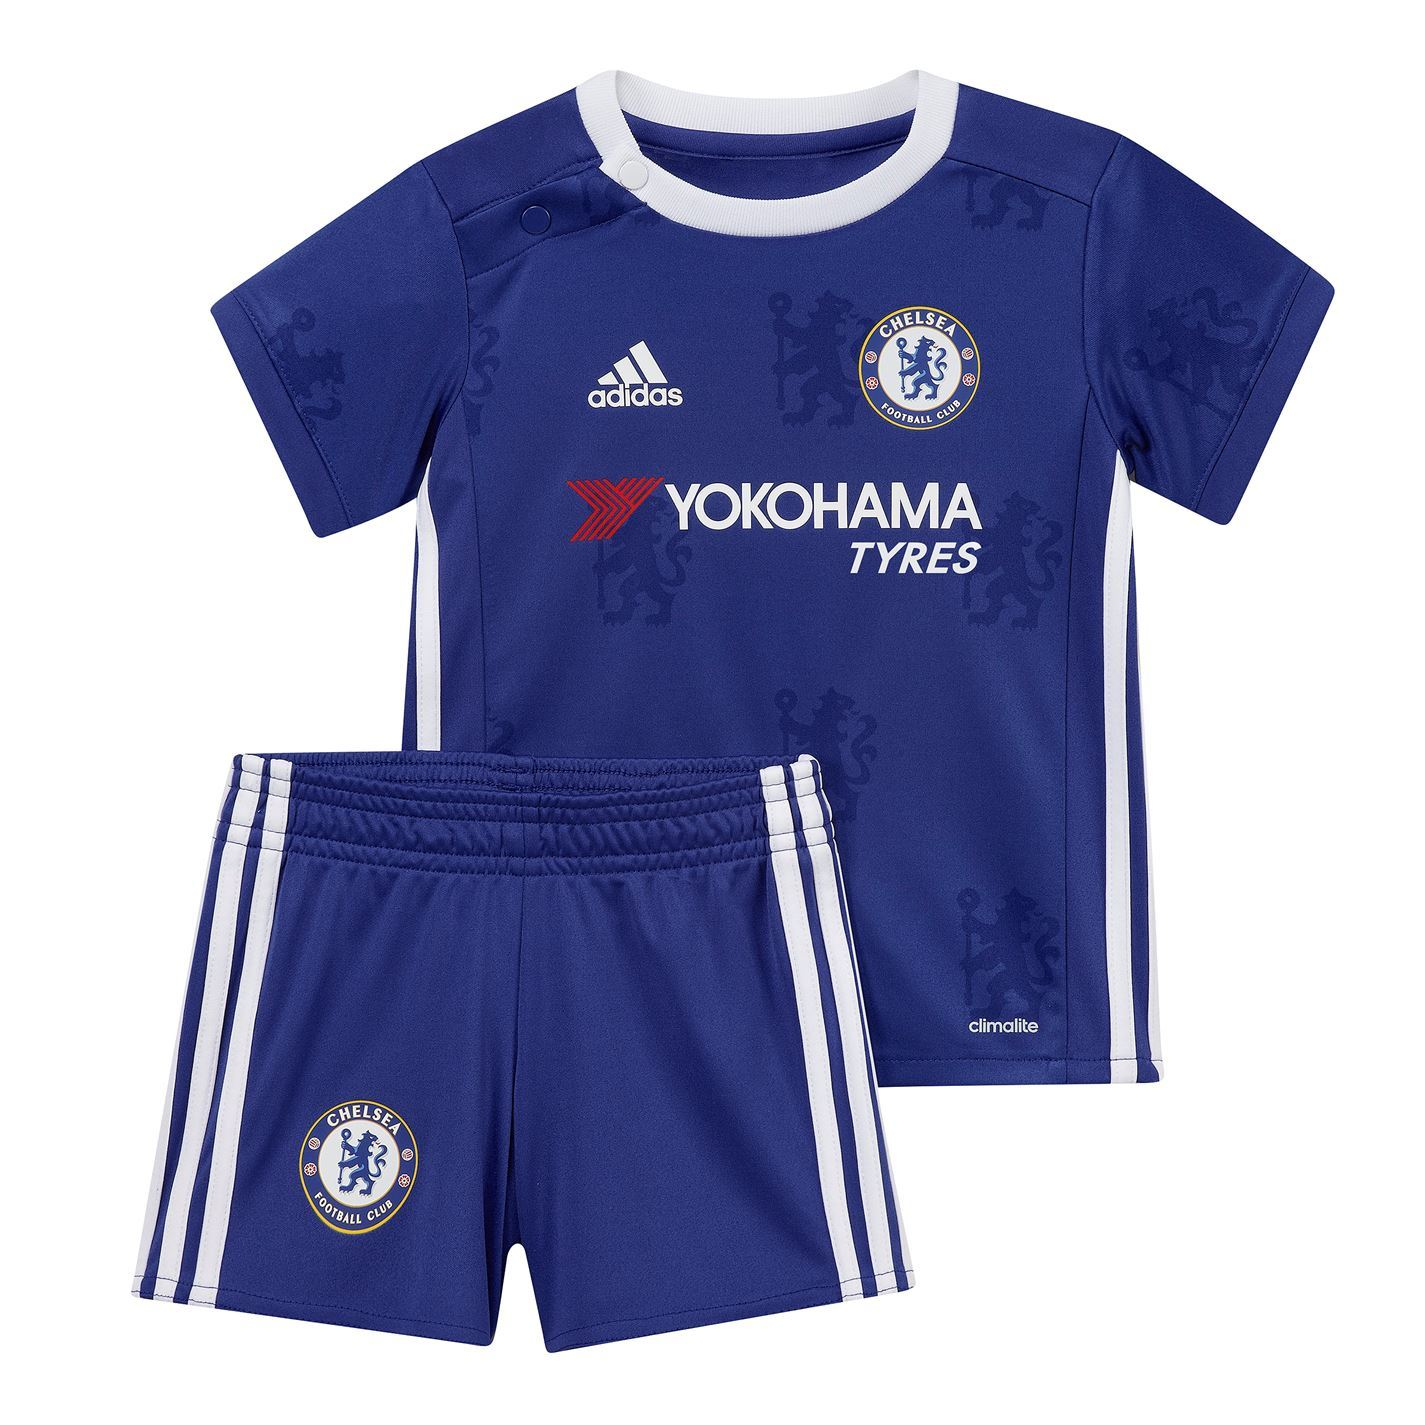 Adidas Chelsea Fc Home Kit   Infants Baby Football Soccer